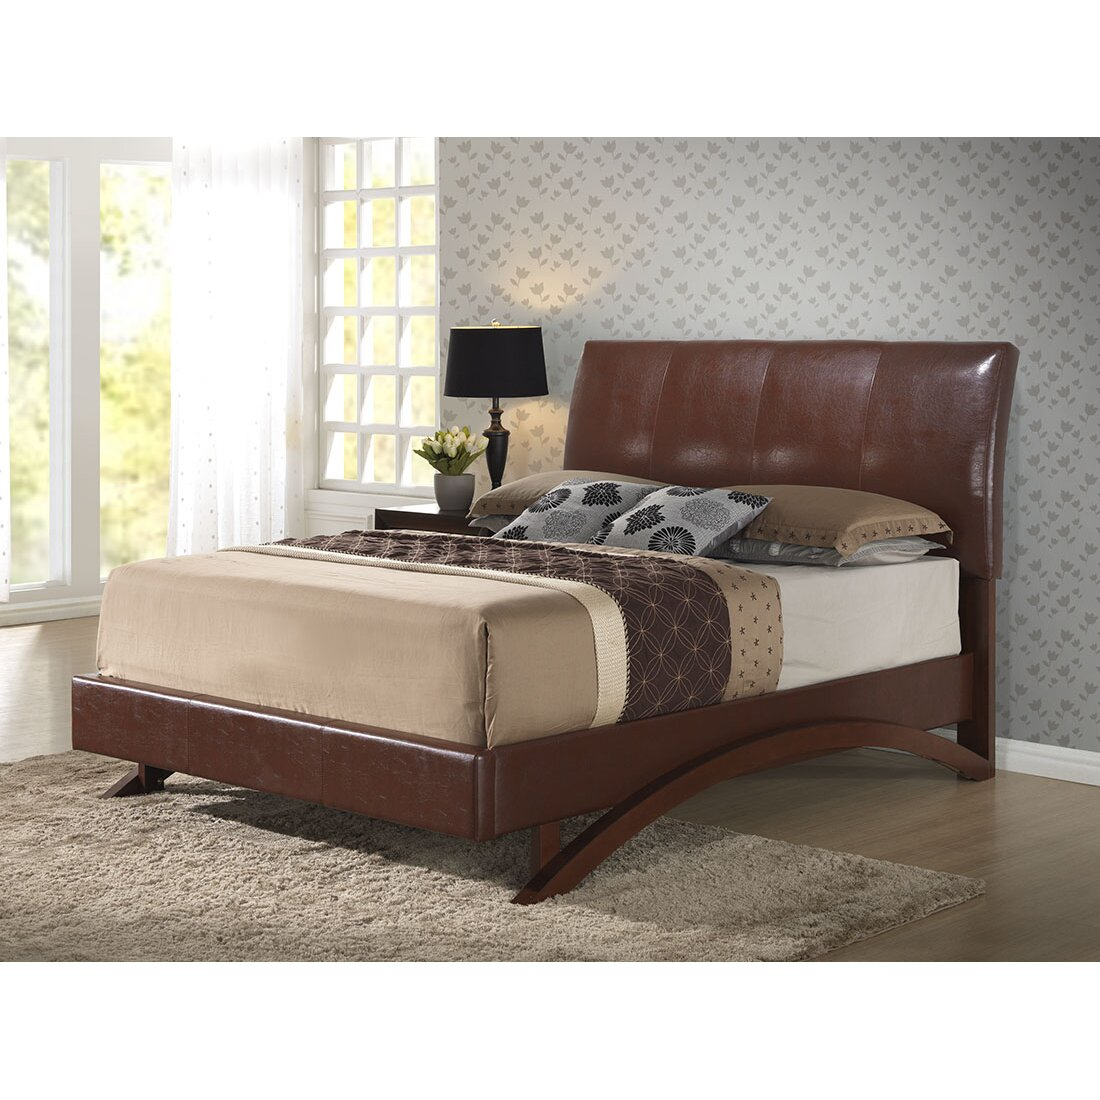 Latitude Run Shana Upholstered Sleigh Bed Latitude Run Shana Upholstered  Sleigh Bed Reviews Wayfair  Zinus. Canopy Zinus Red Beds   Getpaidforphotos com